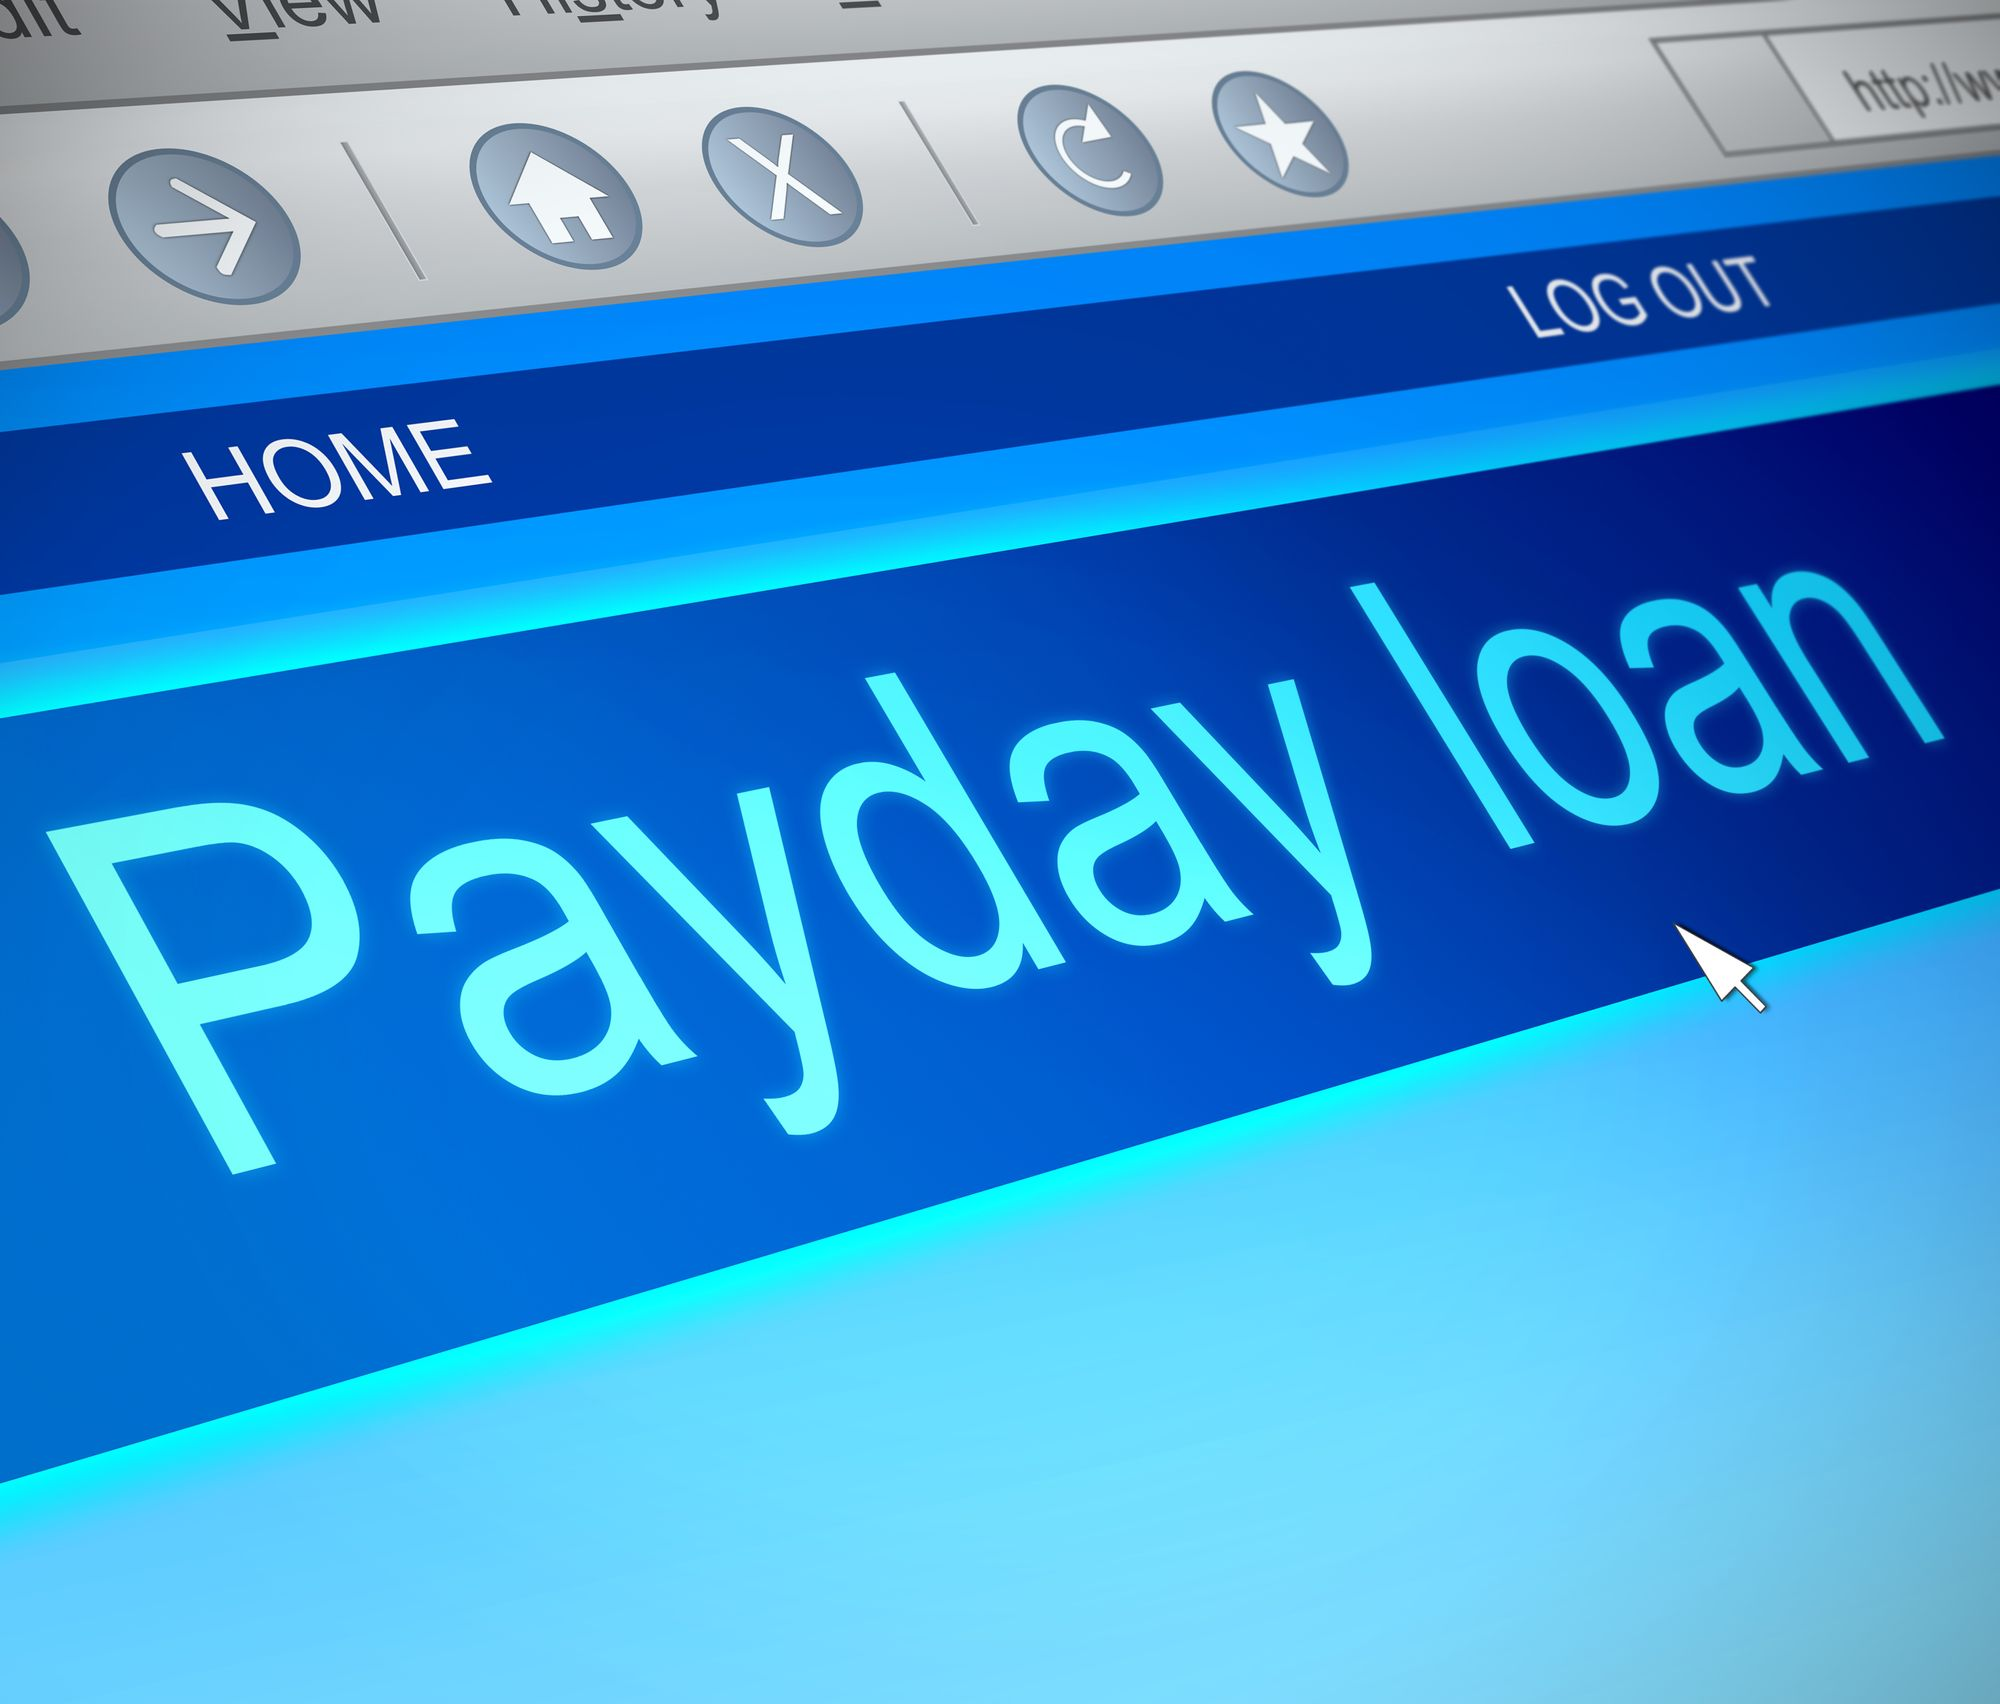 How to Finance Your Business Through Payday Loans in Ontario